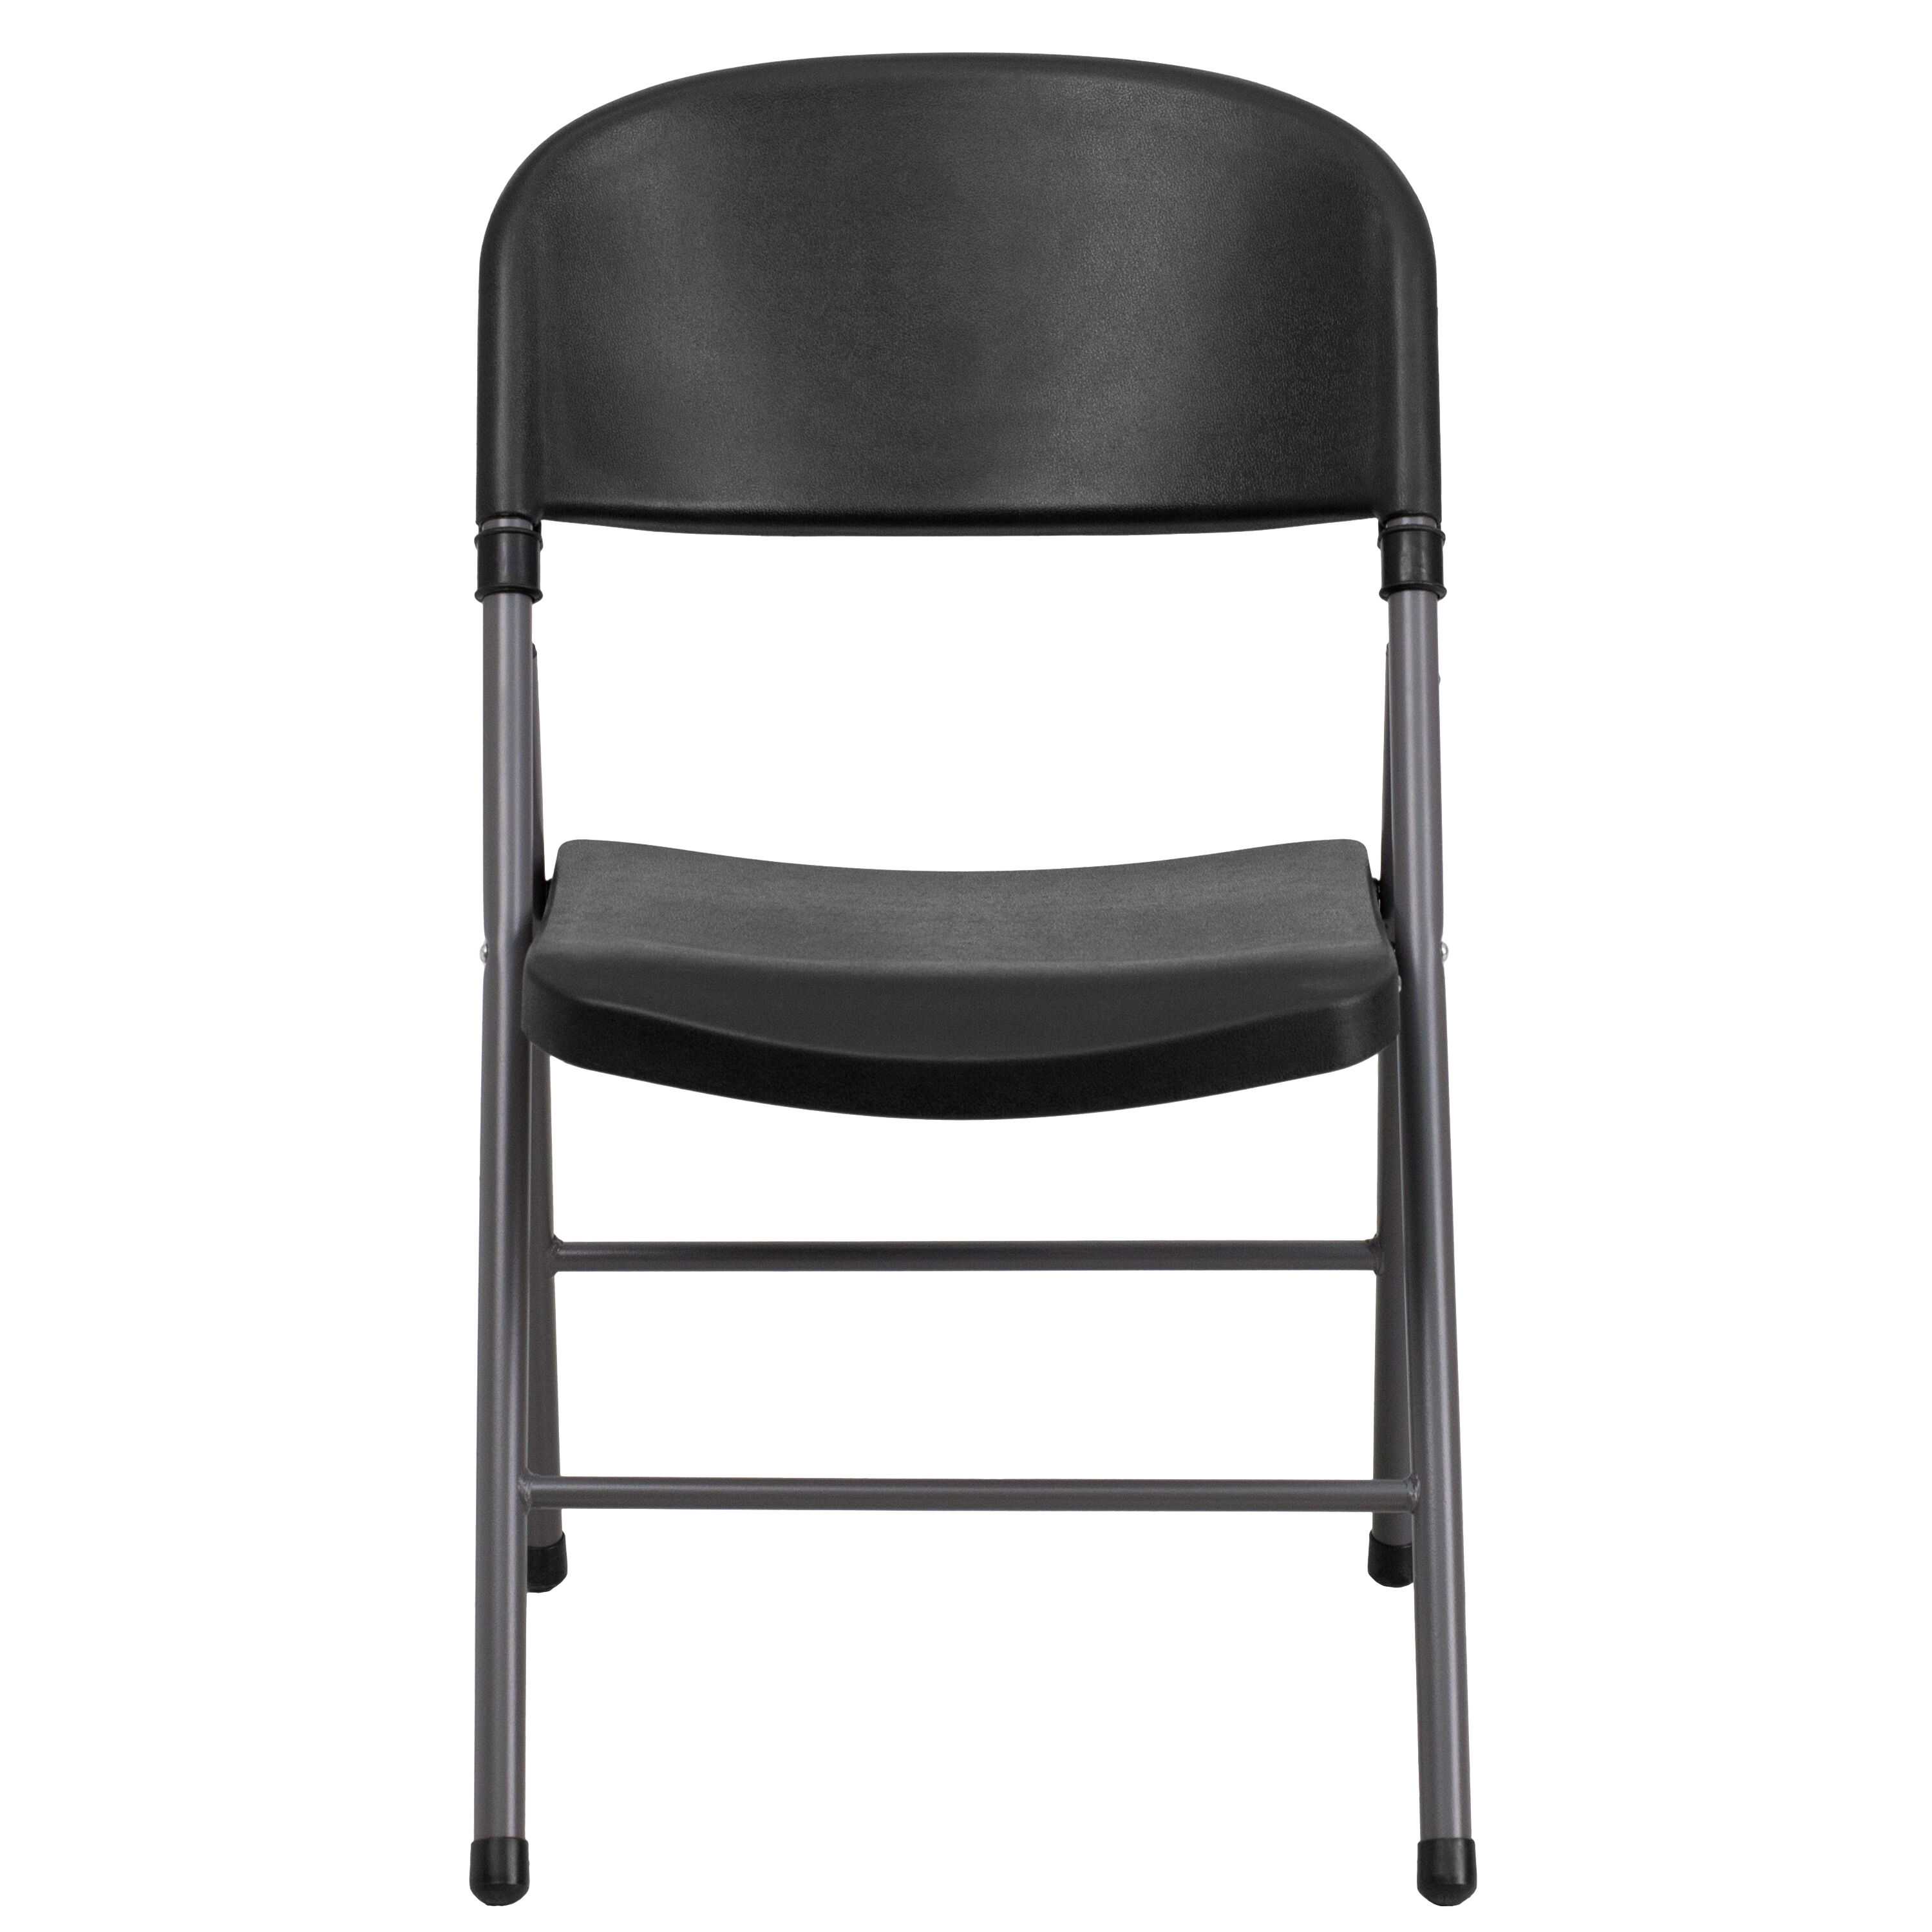 Capacity Black Plastic Folding Chair With Charcoal Frame Is On